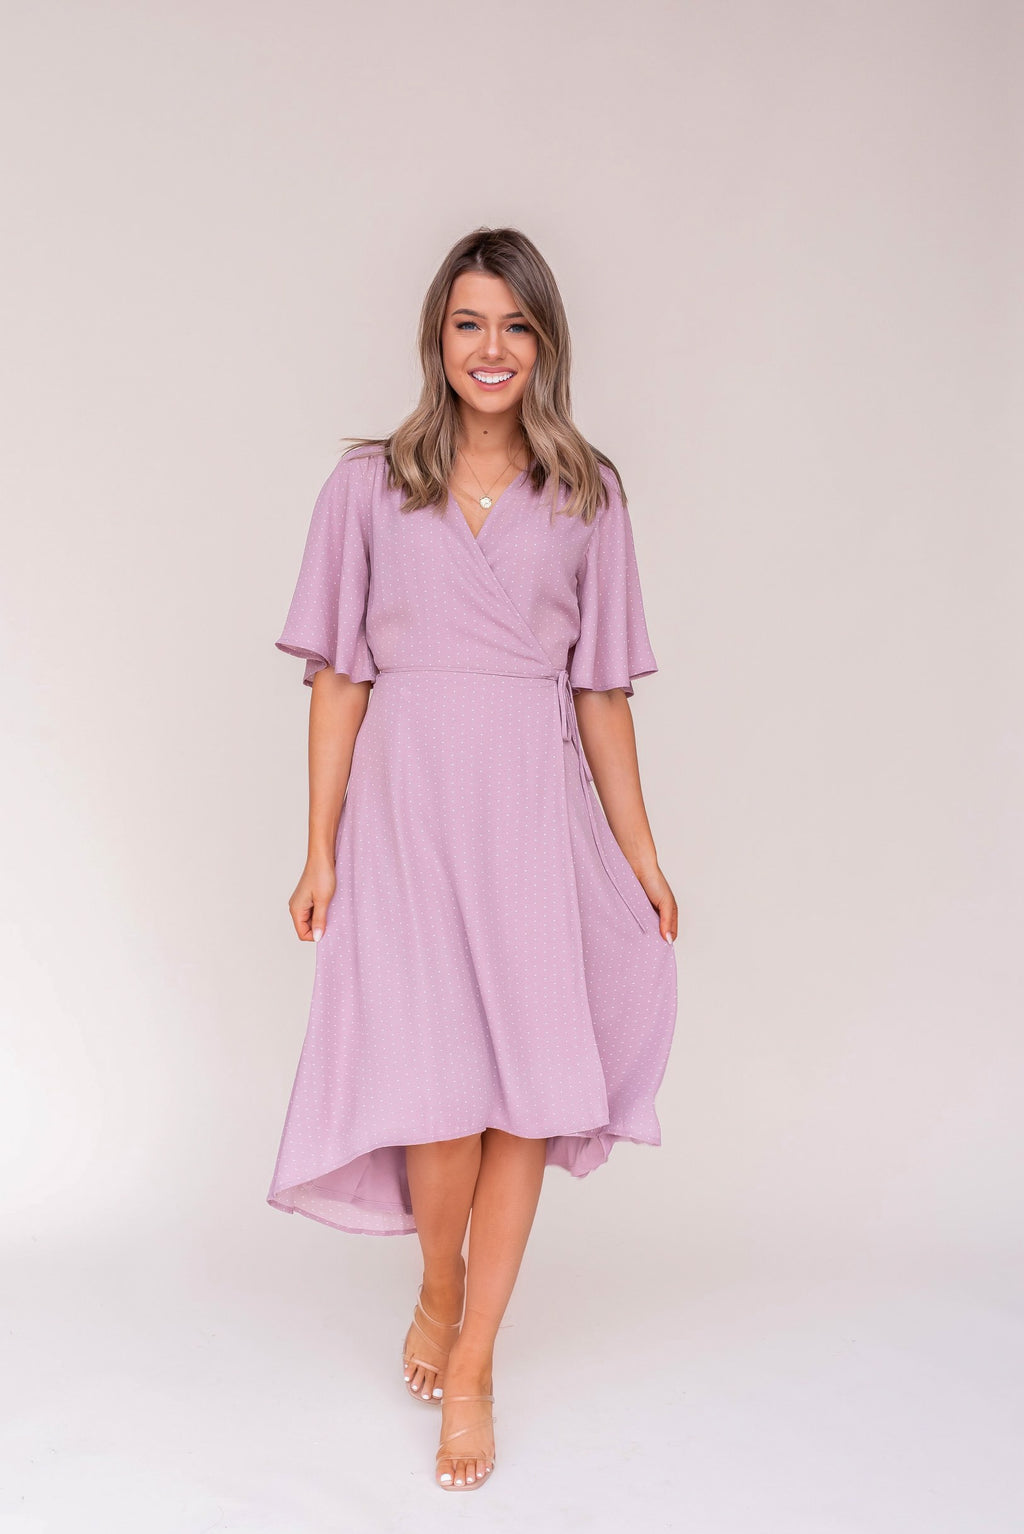 Lovell Mauve Midi Dress | LLACIE